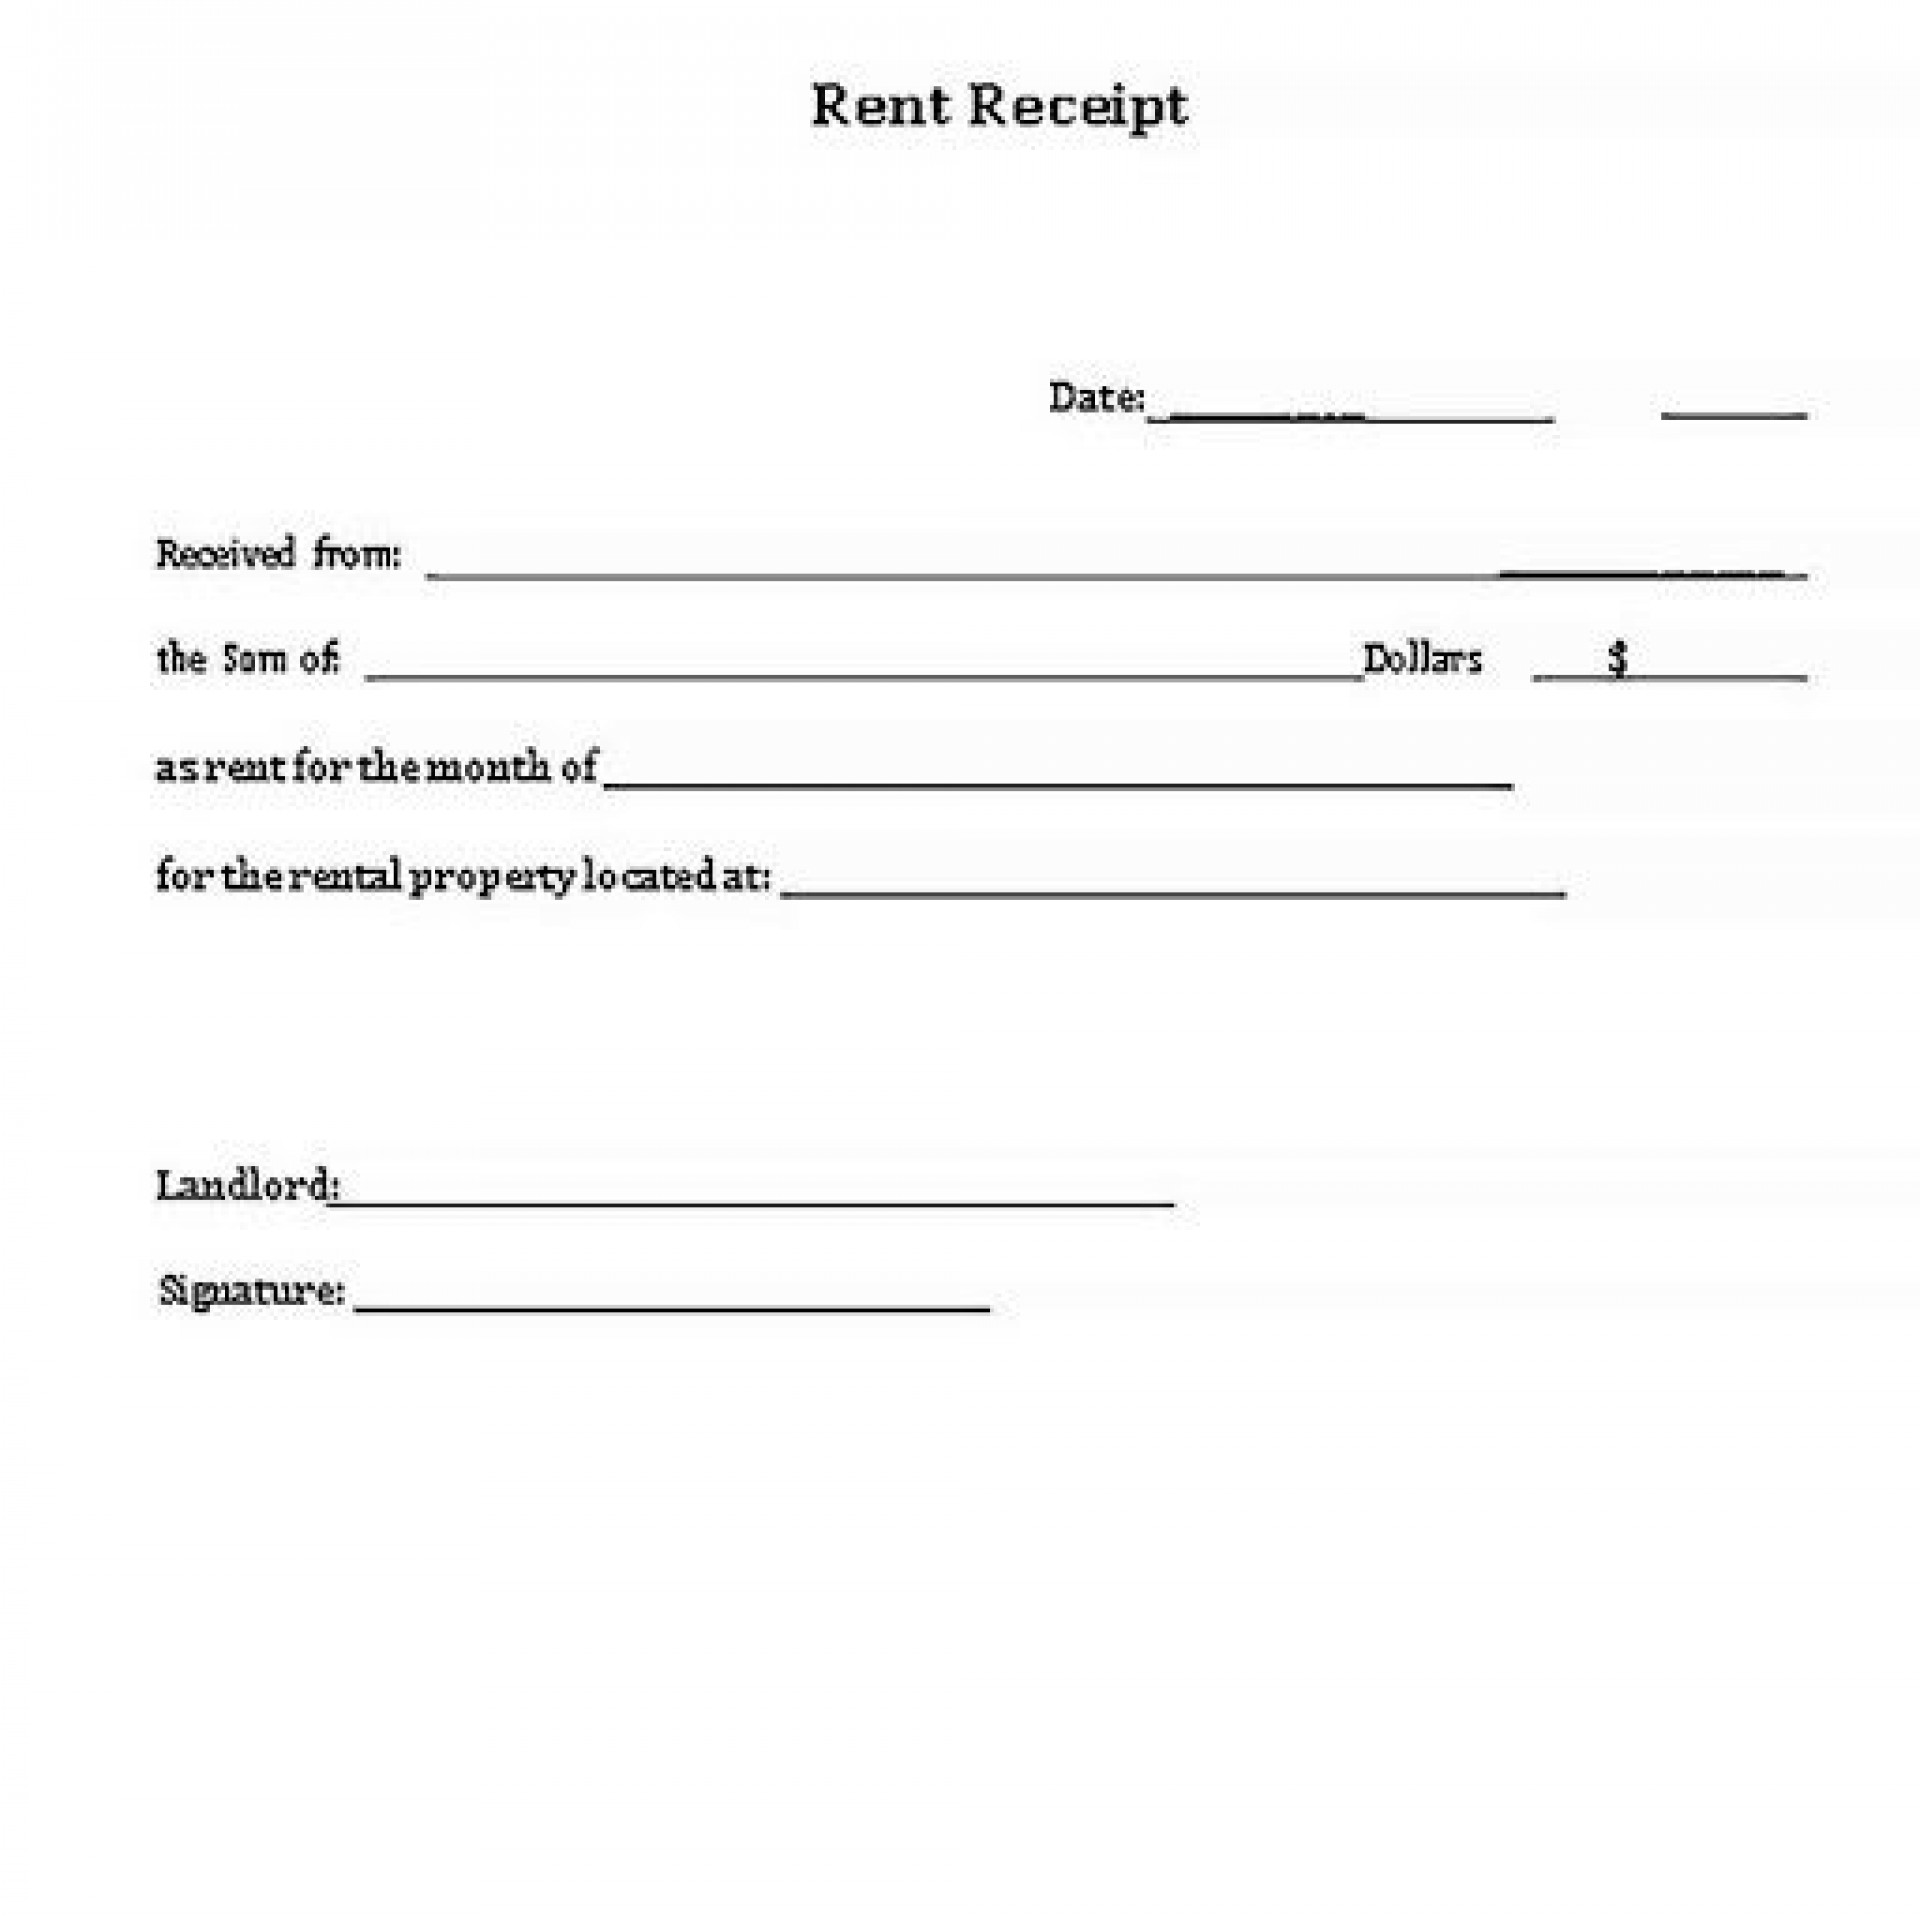 001 Stupendou Rent Receipt Sample Doc Highest Quality  Format Free Download India Word1920